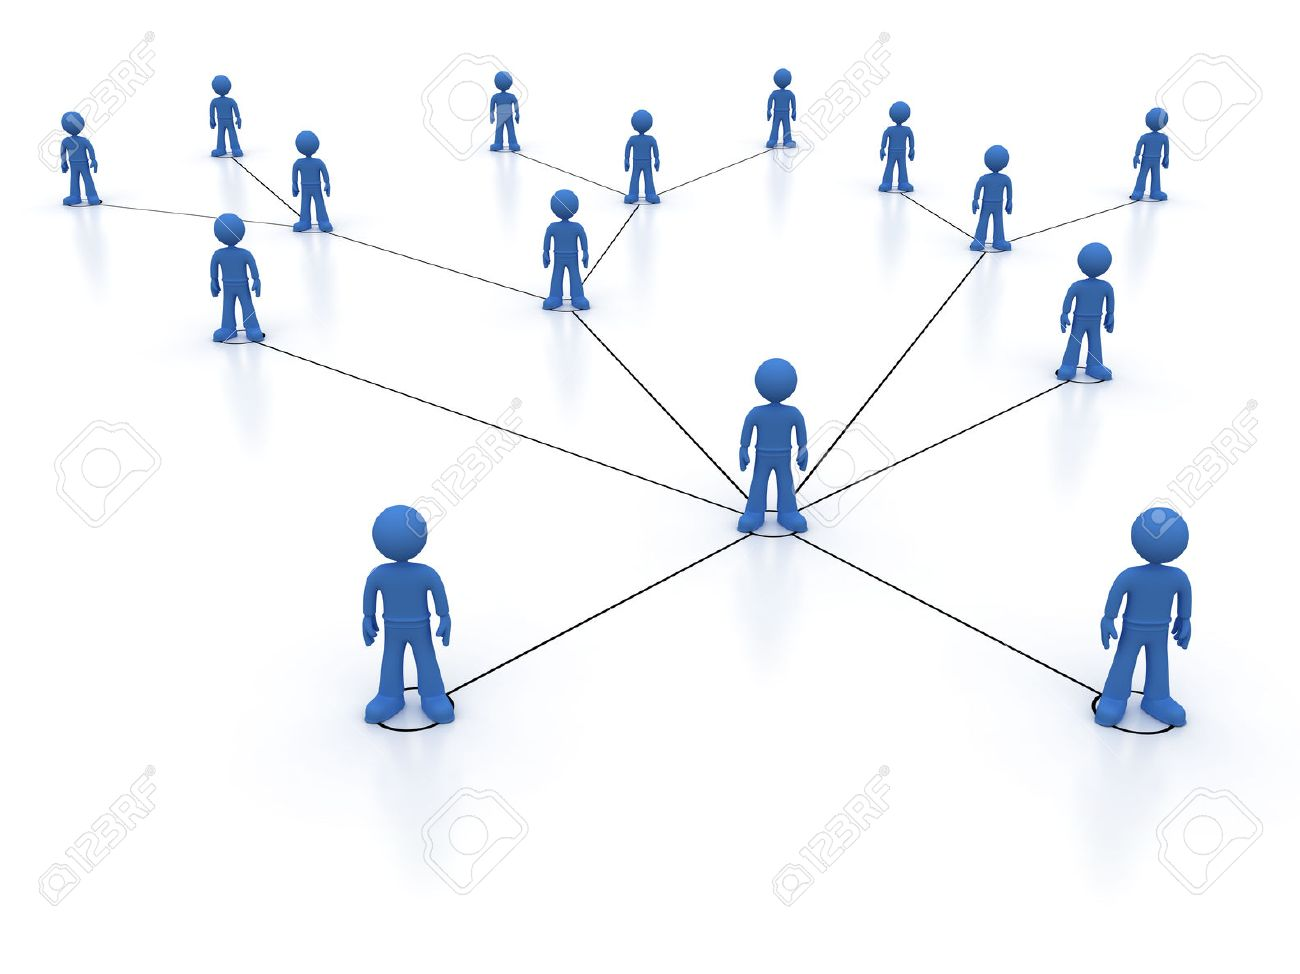 Concept image Representing network, networking, connection, social networks, communications - 50204902